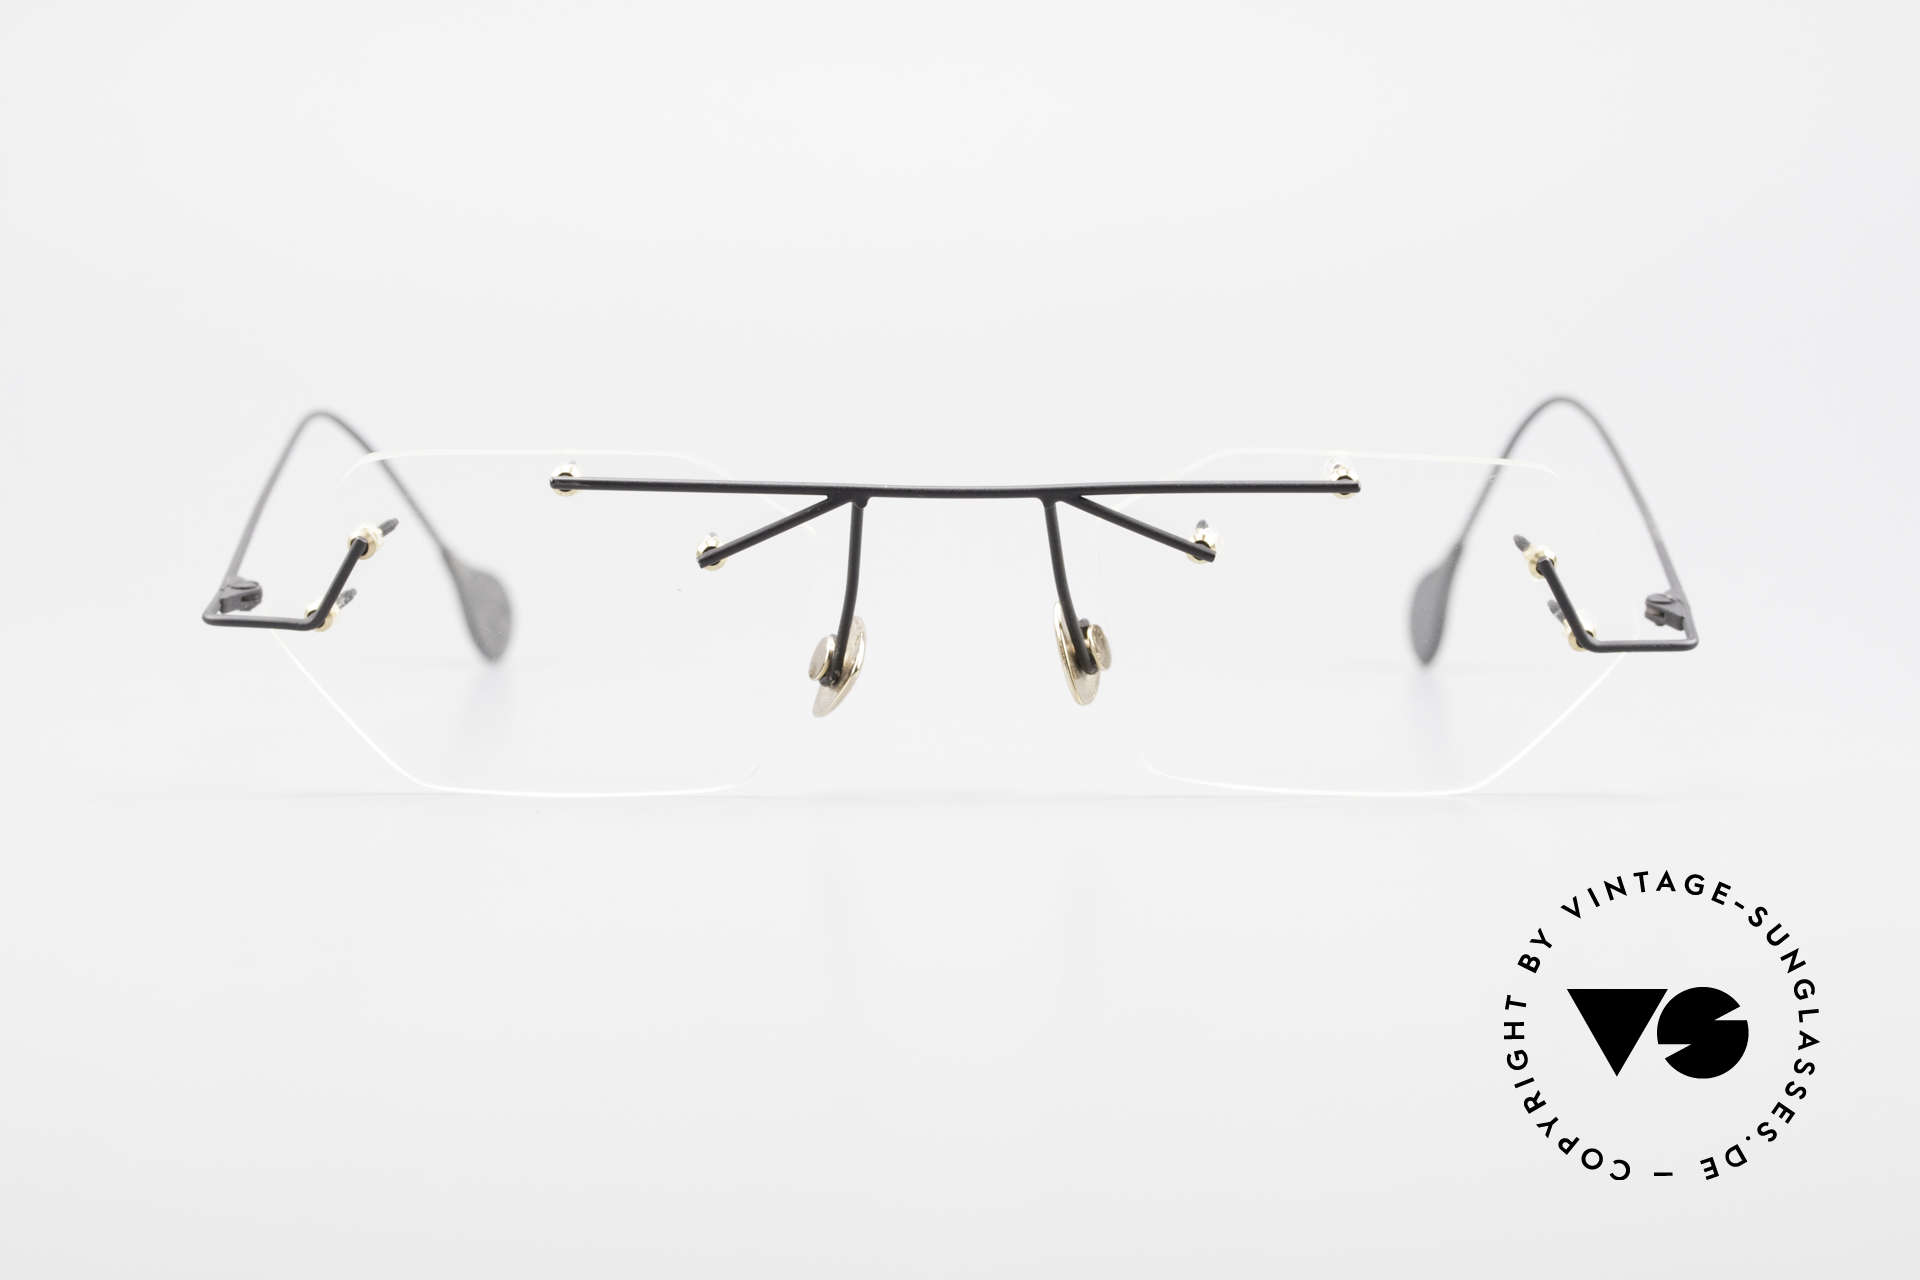 Paul Chiol 1998 Artful Rimless Eyeglasses 90's, a synonym for sophisticated rimless spectacles, Made for Men and Women